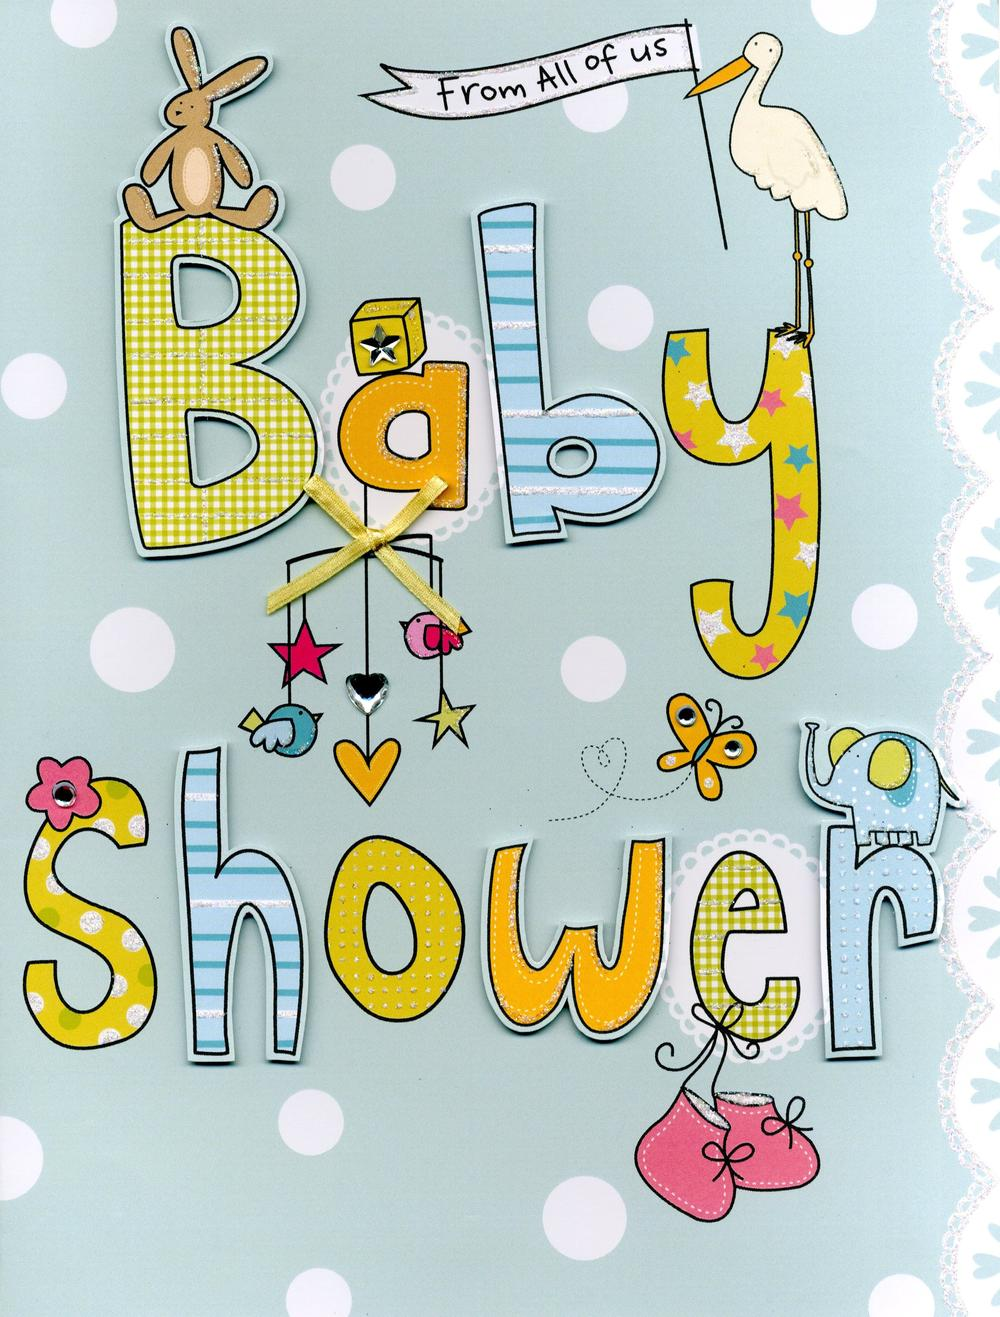 Baby Shower From All Of Us Gigantic Greeting Card